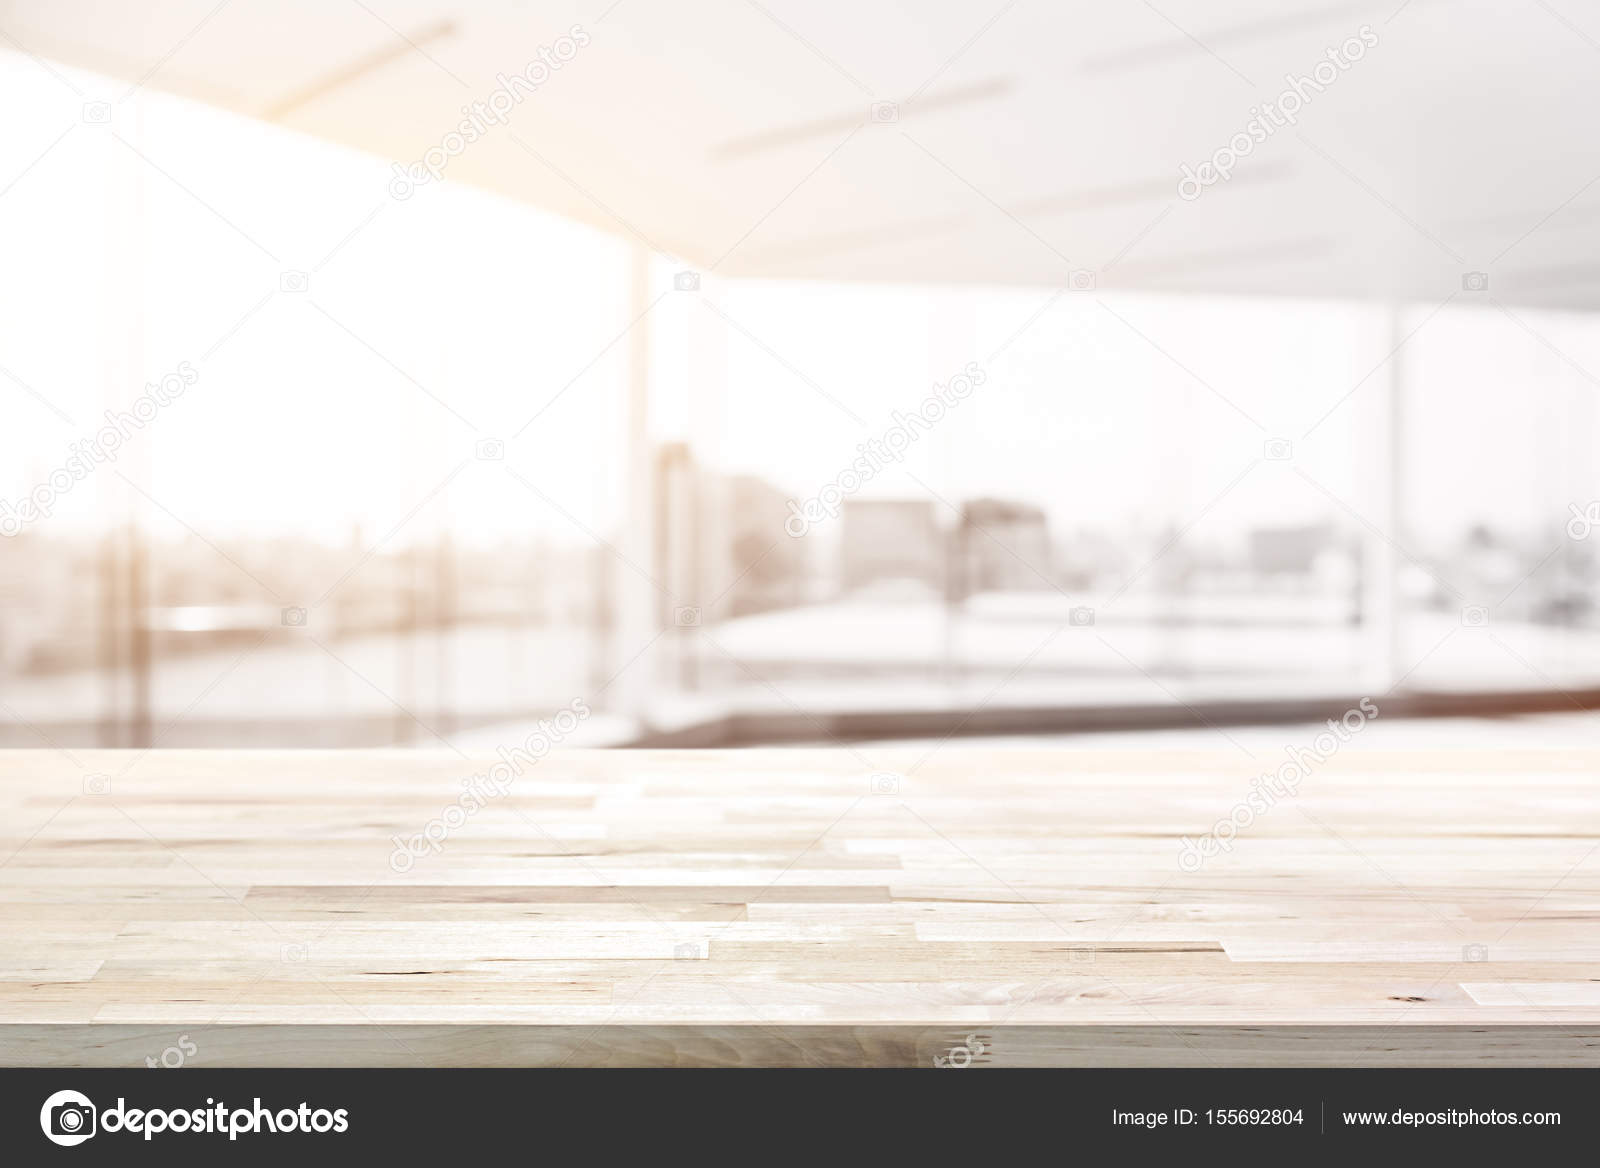 Wood Table Top In Blur Empty White Office Room With Glass Wall And City  Building View In Background   Can Be Used For Display Or Montage Your  Products ...